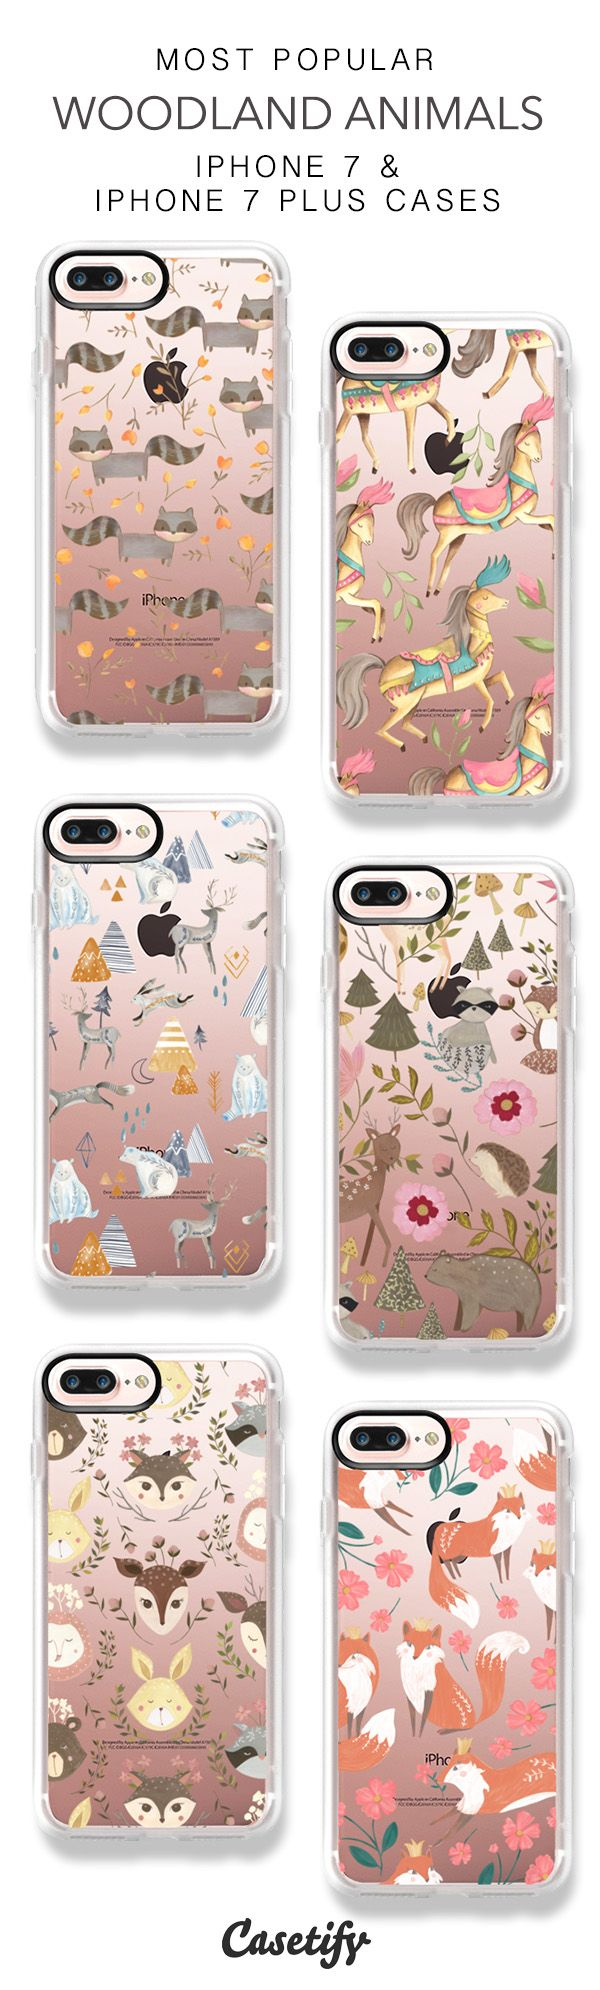 Most Popular Woodland iPhone 7 Cases & iPhone 7 Plus Cases here > https://www.casetify.com/biancapozzi/collection